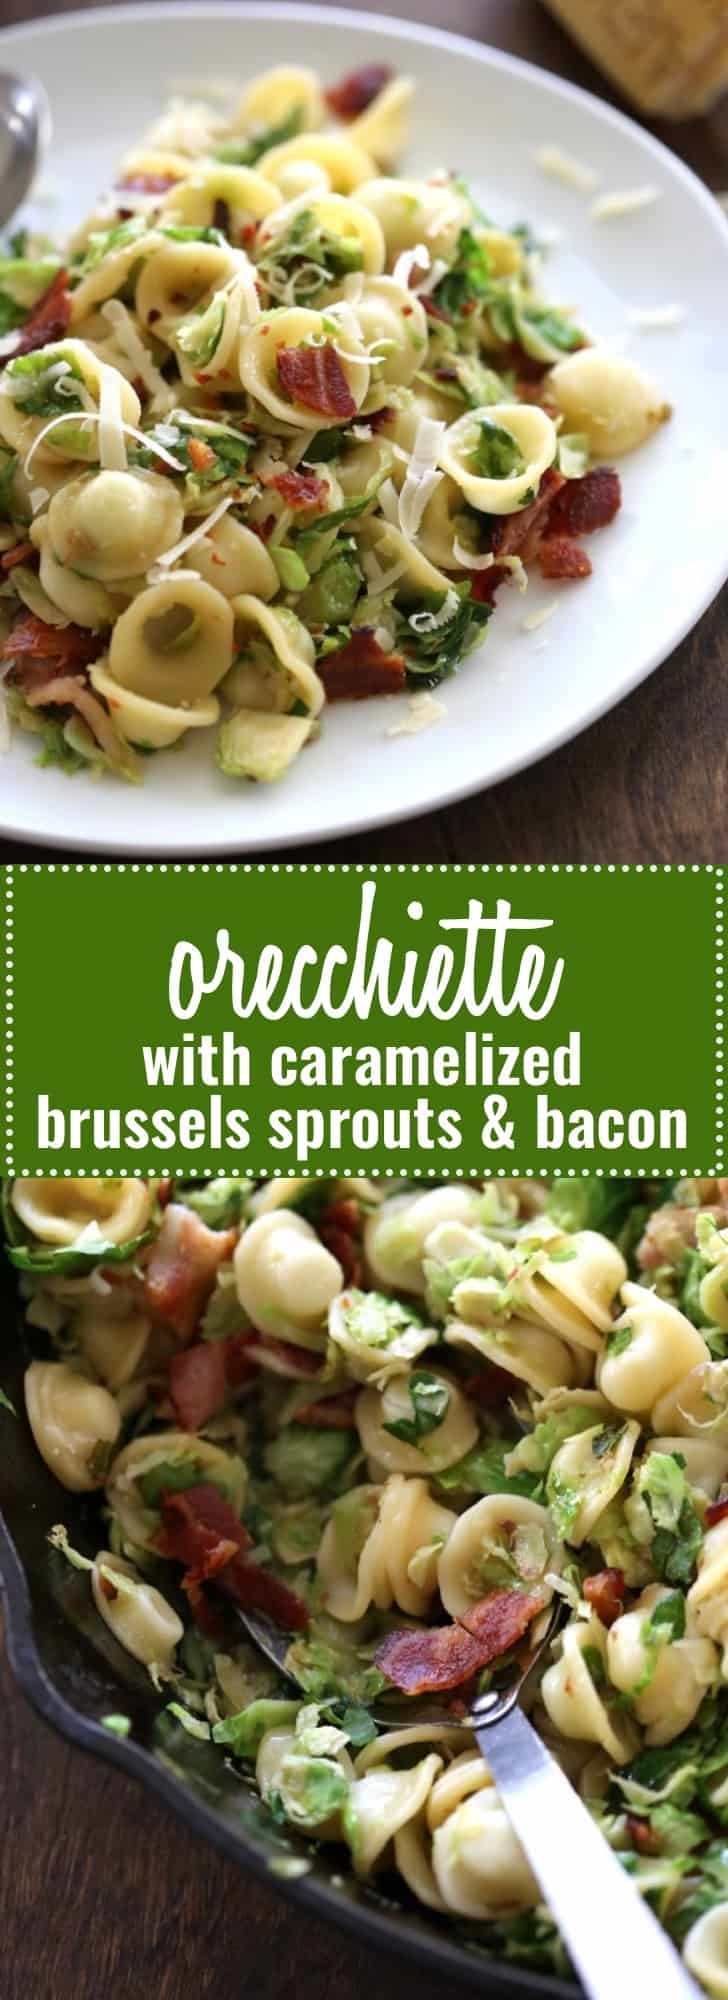 how to make brussel sprouts and bacon